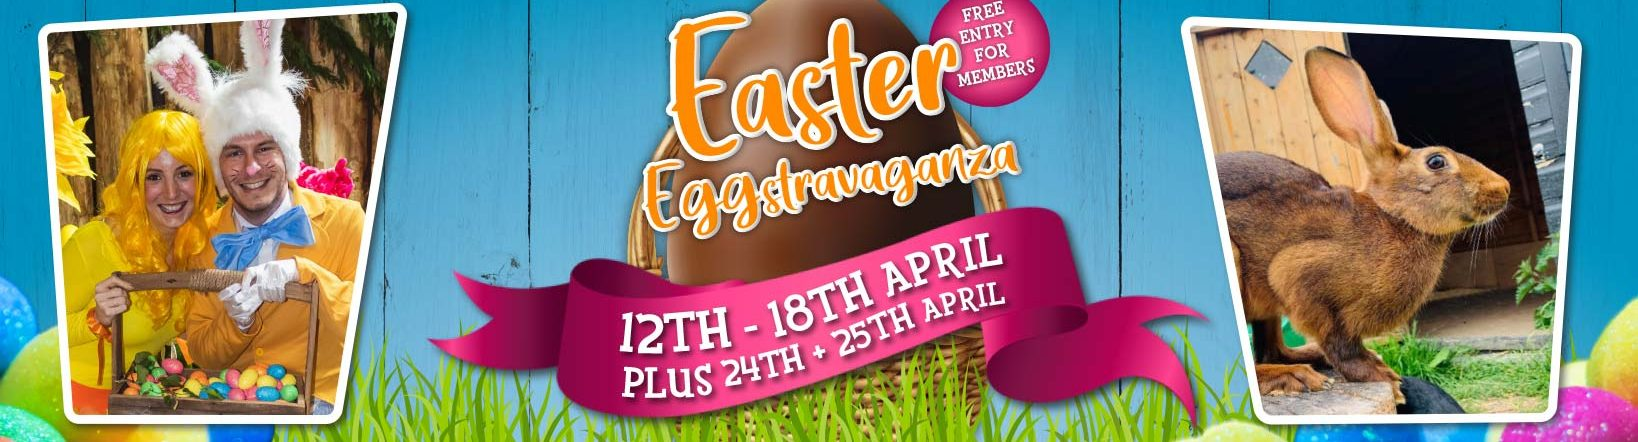 The Great Easter Eggstravaganza